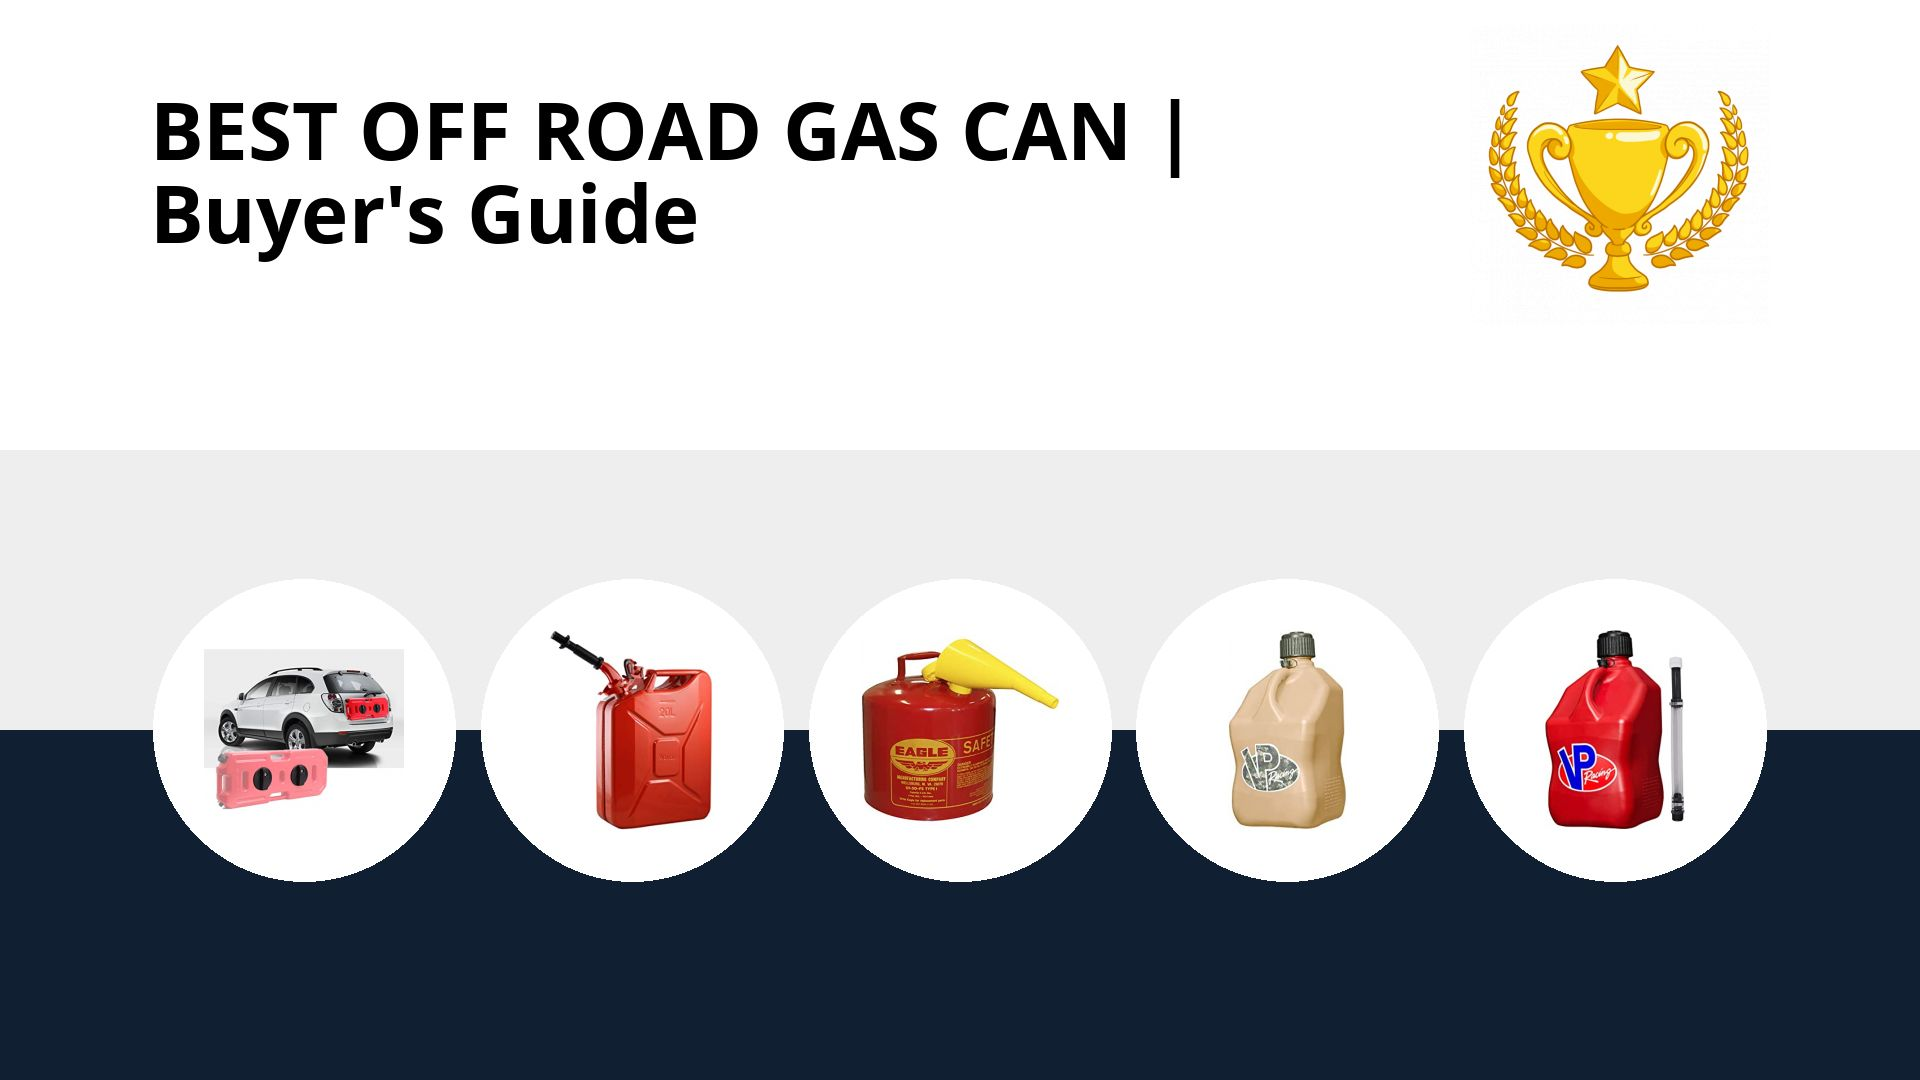 Best Off Road Gas Can: image